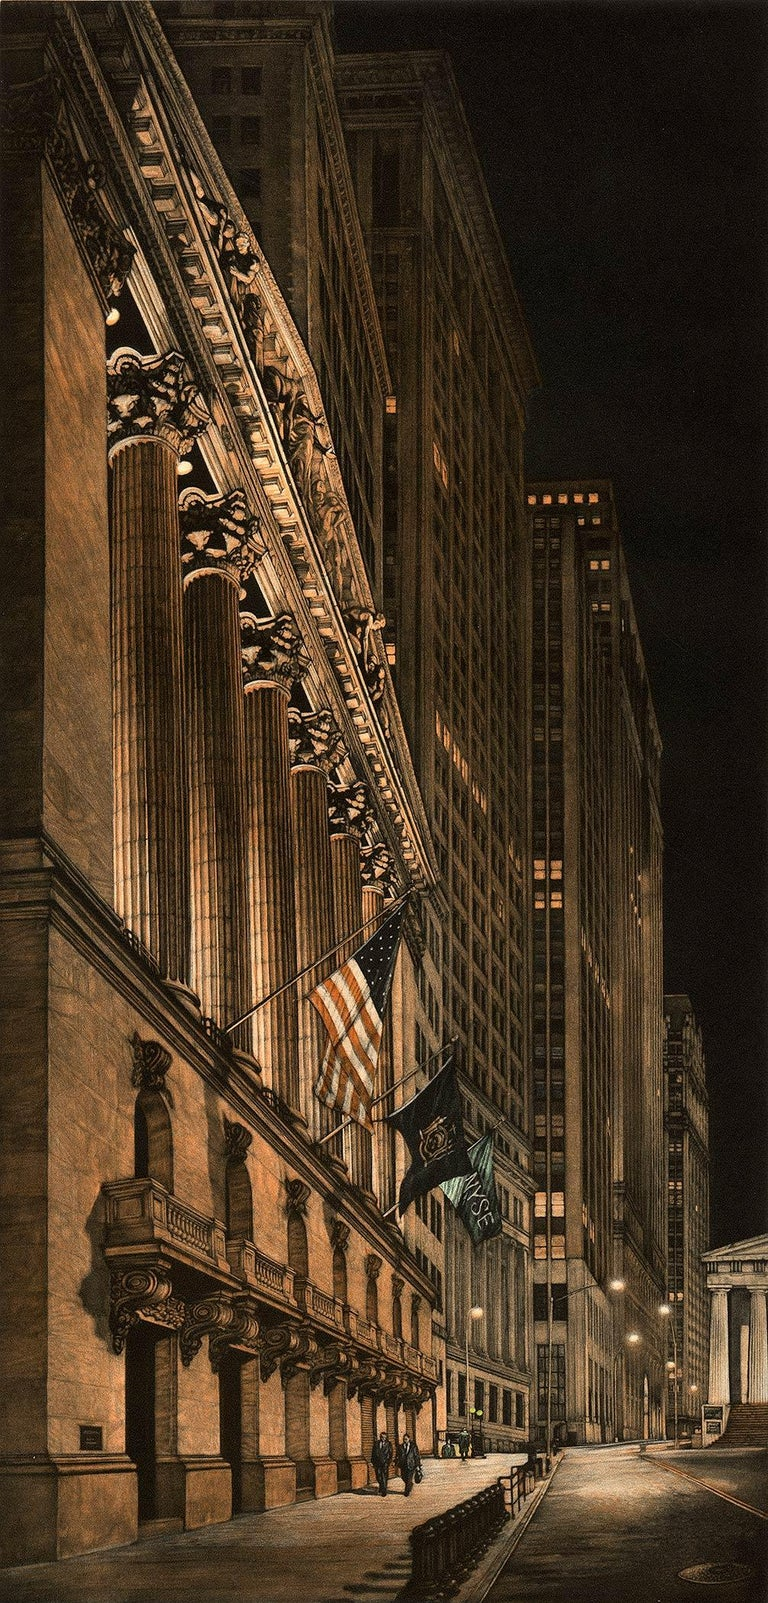 Frederick Mershimer Landscape Print - High Finance (a lonely night on Wall Street)